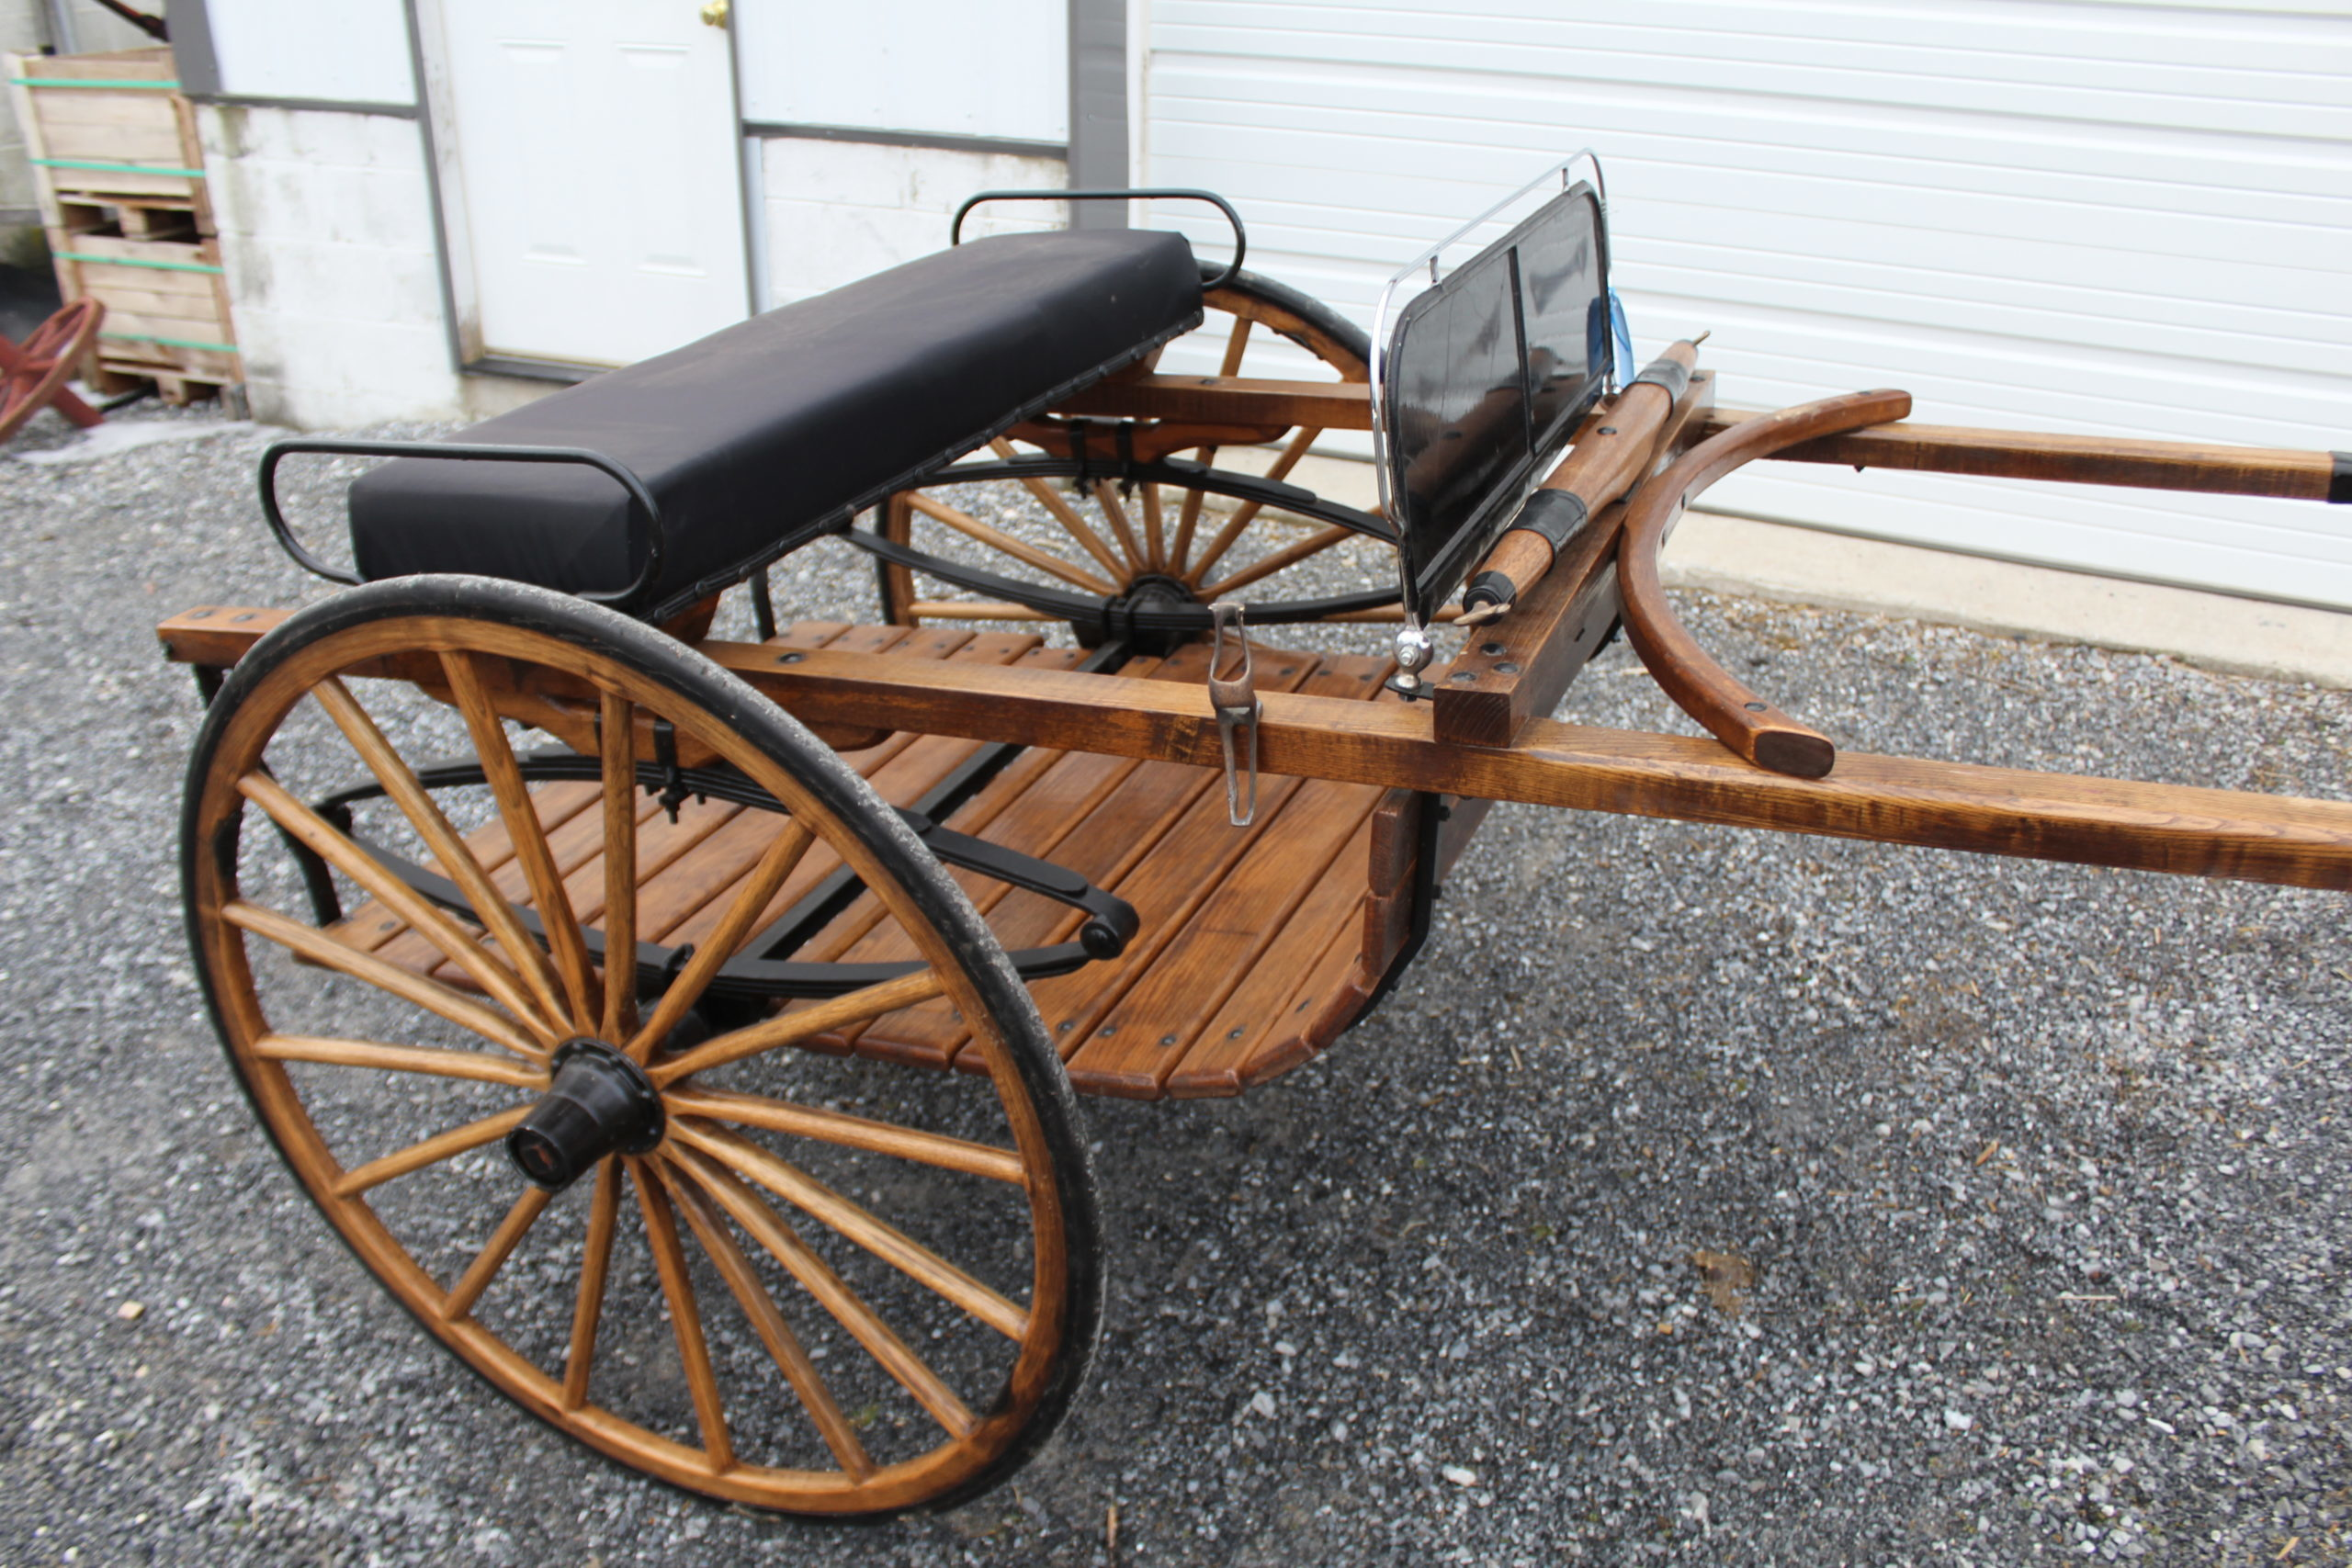 "#552 Horse Size Breaking Cart Natural Finish 36' Wheels 82"" shaft Good condition #750.00"